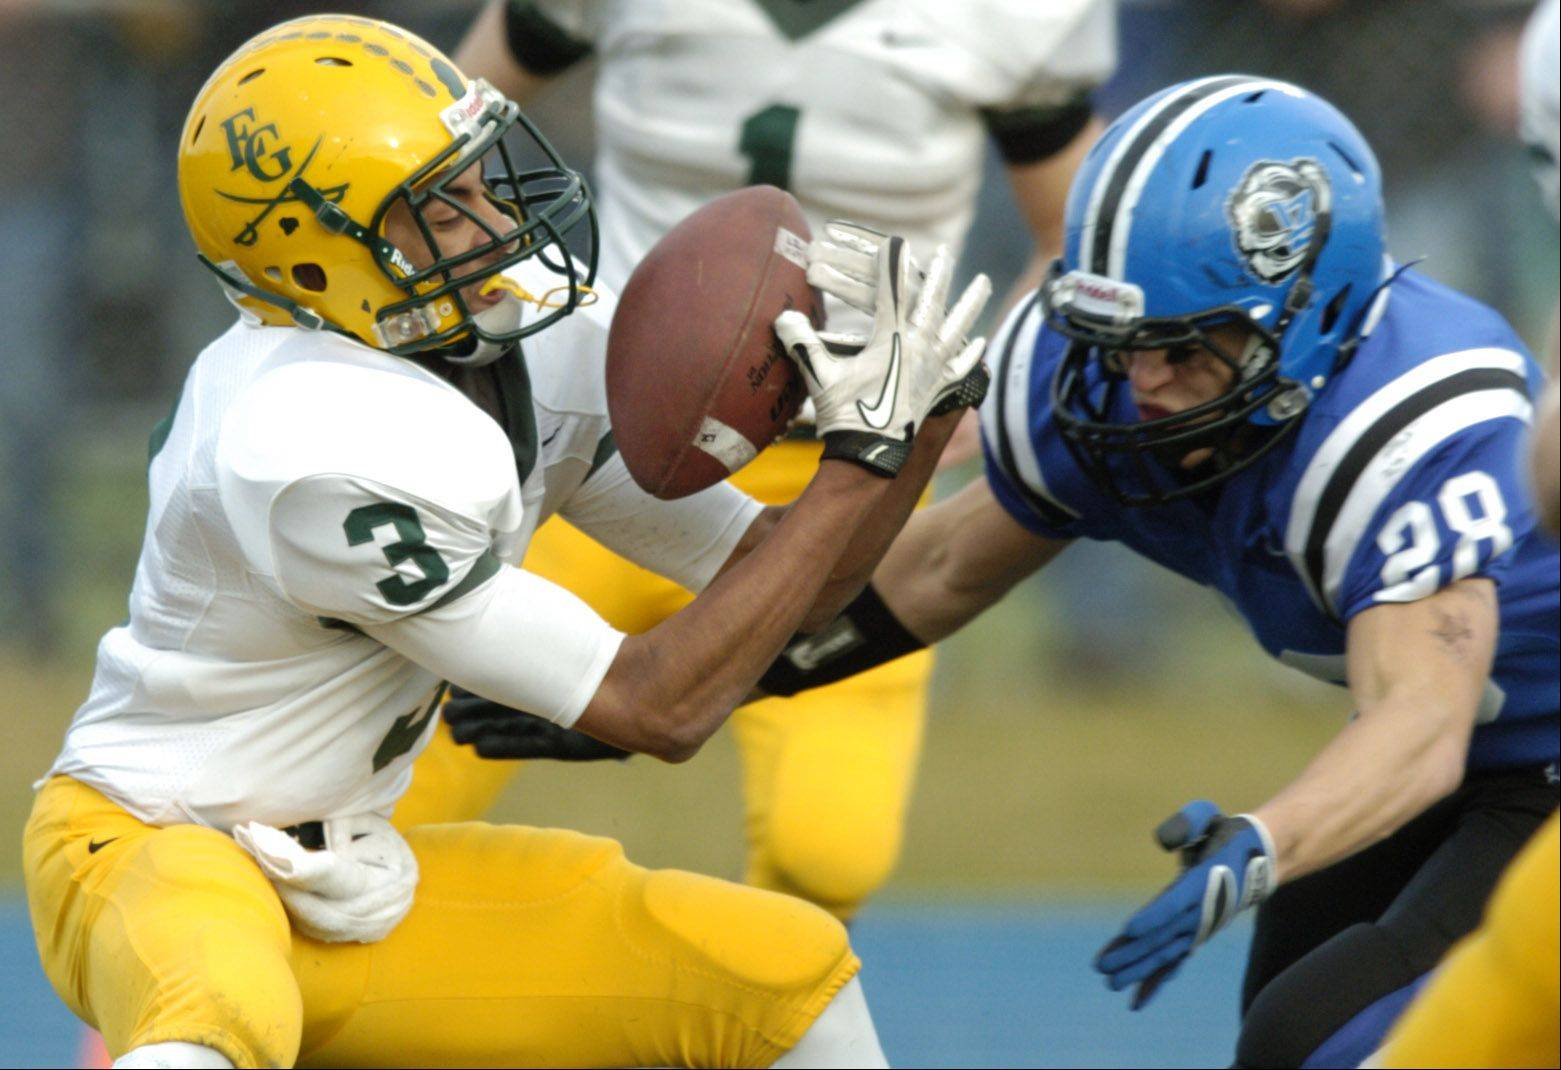 Elk Grove's Kishan Patel nearly fumbles the ball but recovers as Lake Zurich's Blake Moskal closes in.